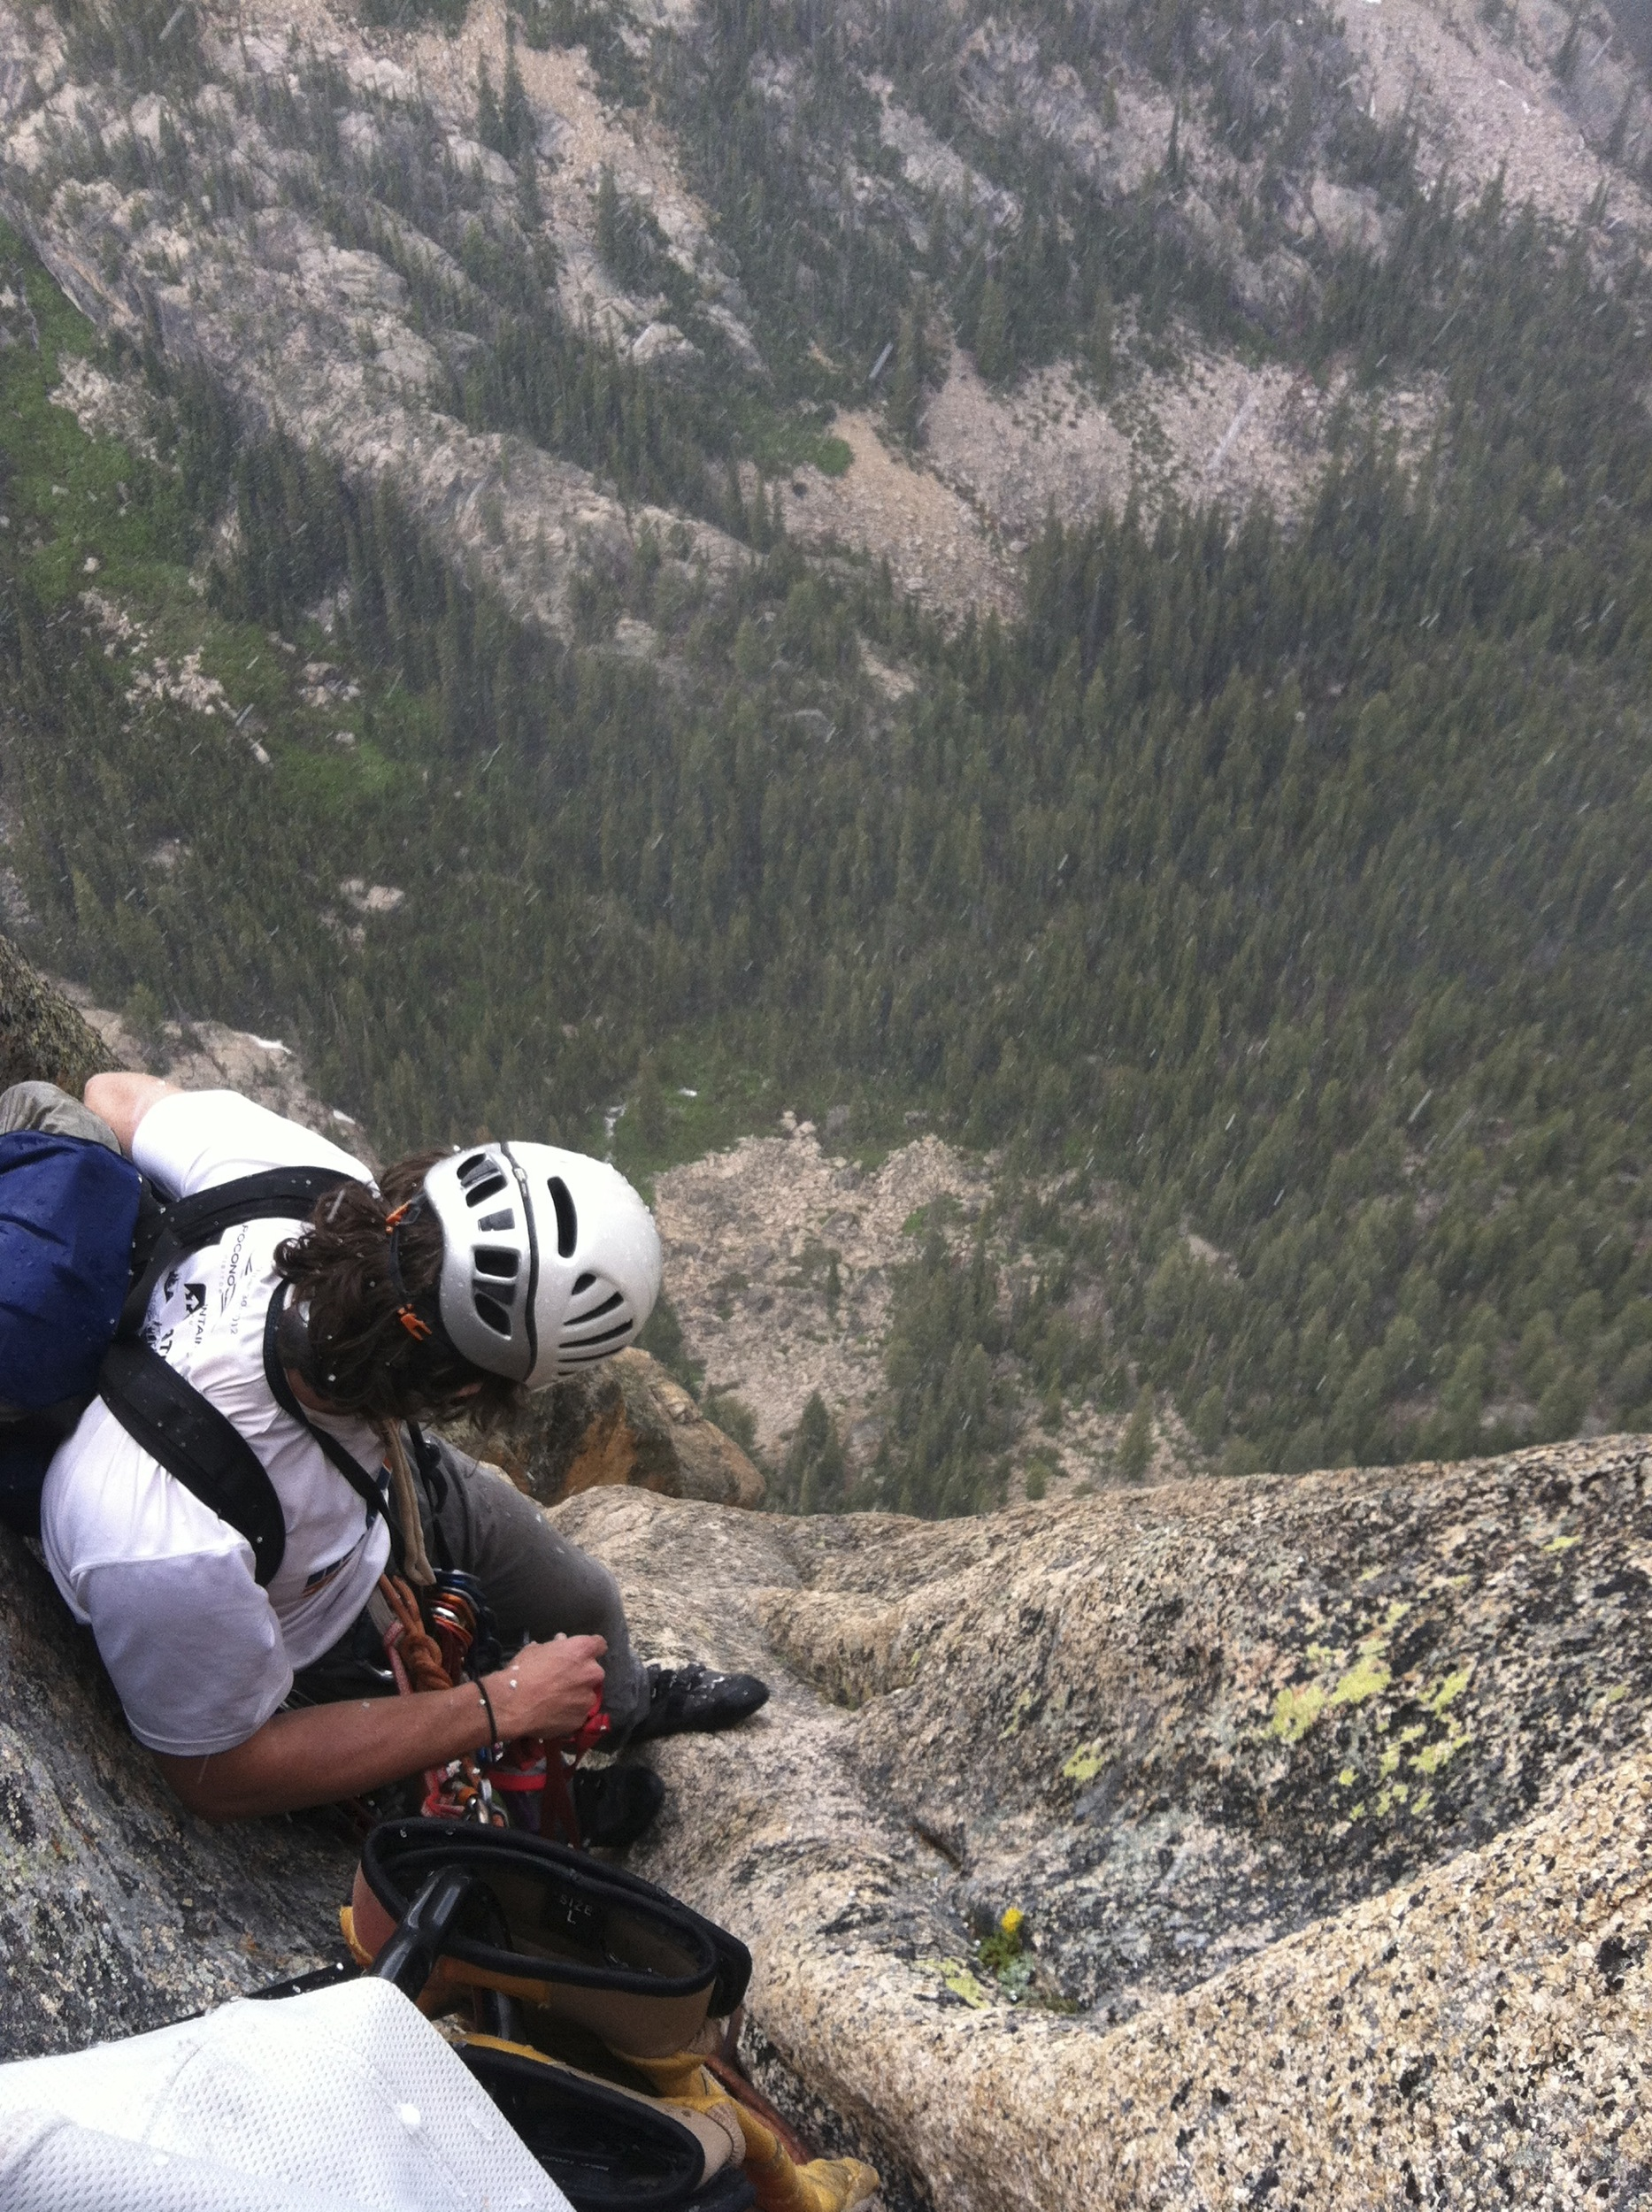 James at the 7th Belay